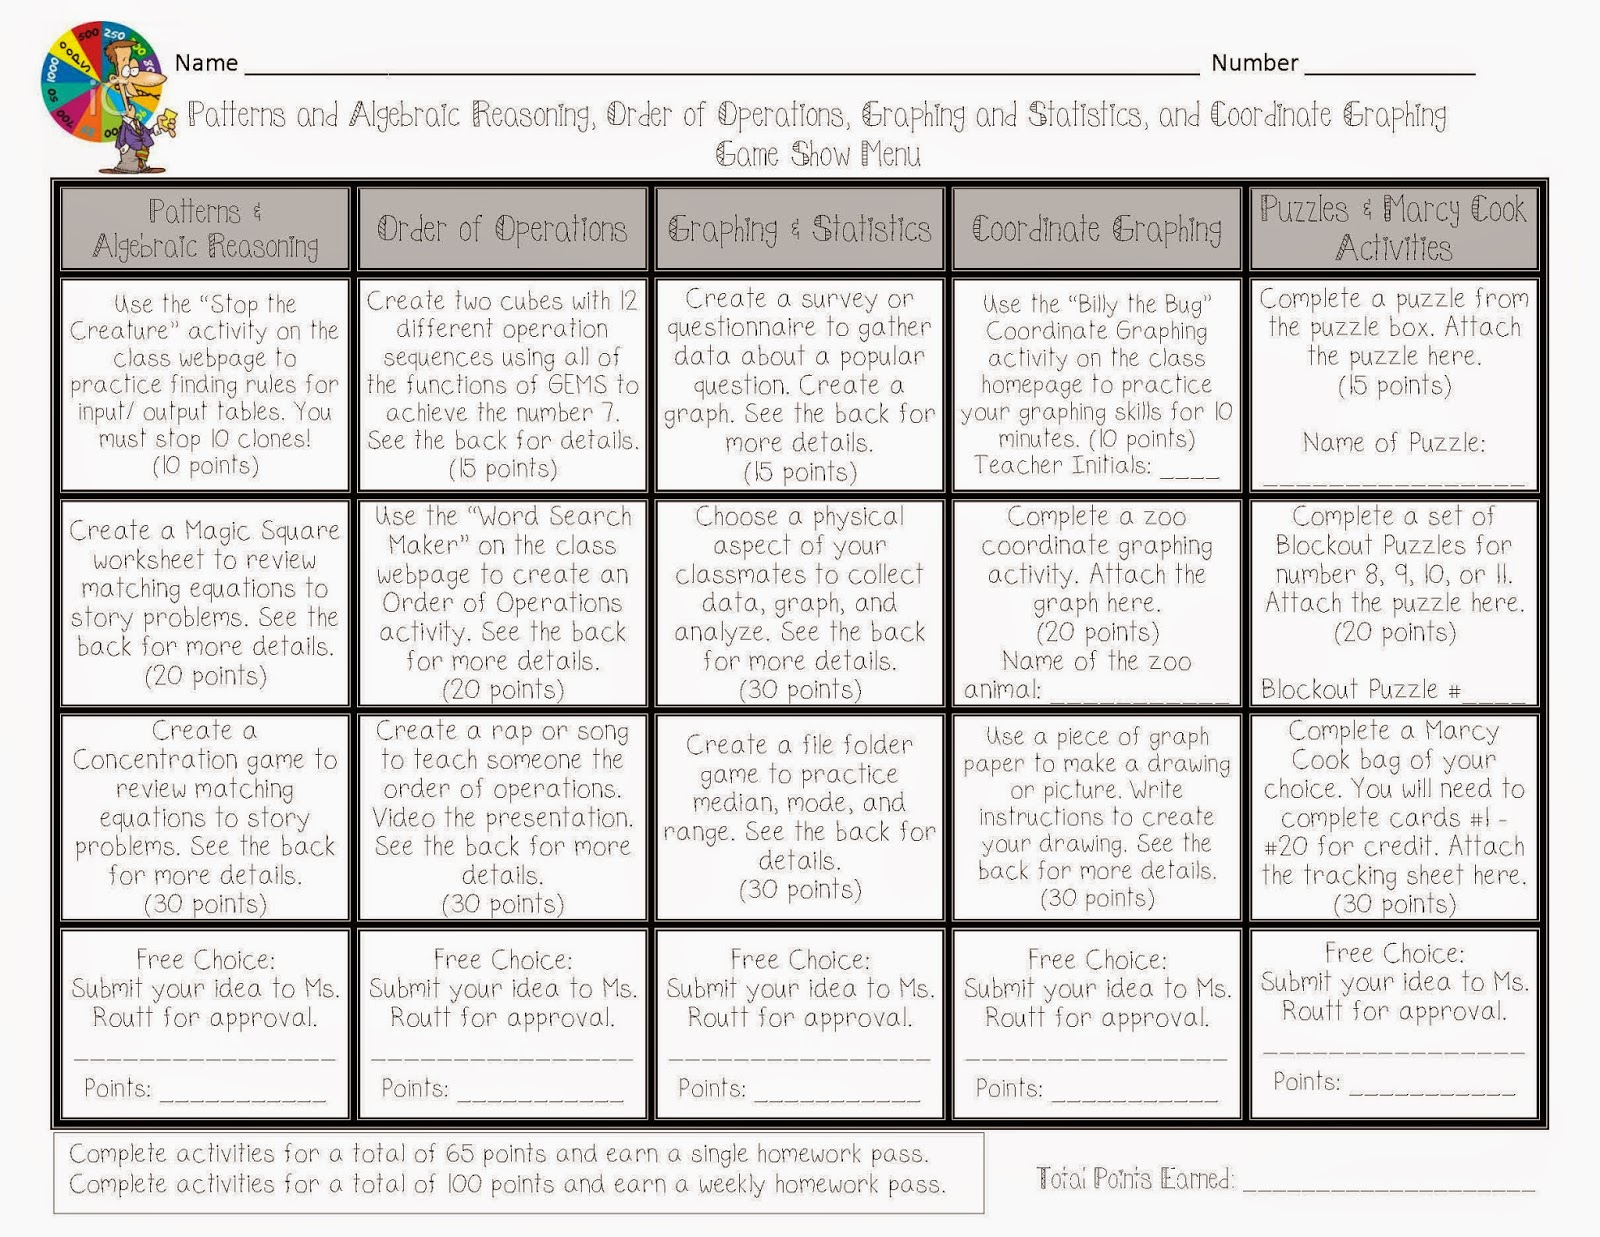 worksheet Halloween Graphing Coordinate halloween graphing activity radicals and rational exponents worksheet the best of teacher entrepreneurs doing math routty way page 1 engaging 23html hal